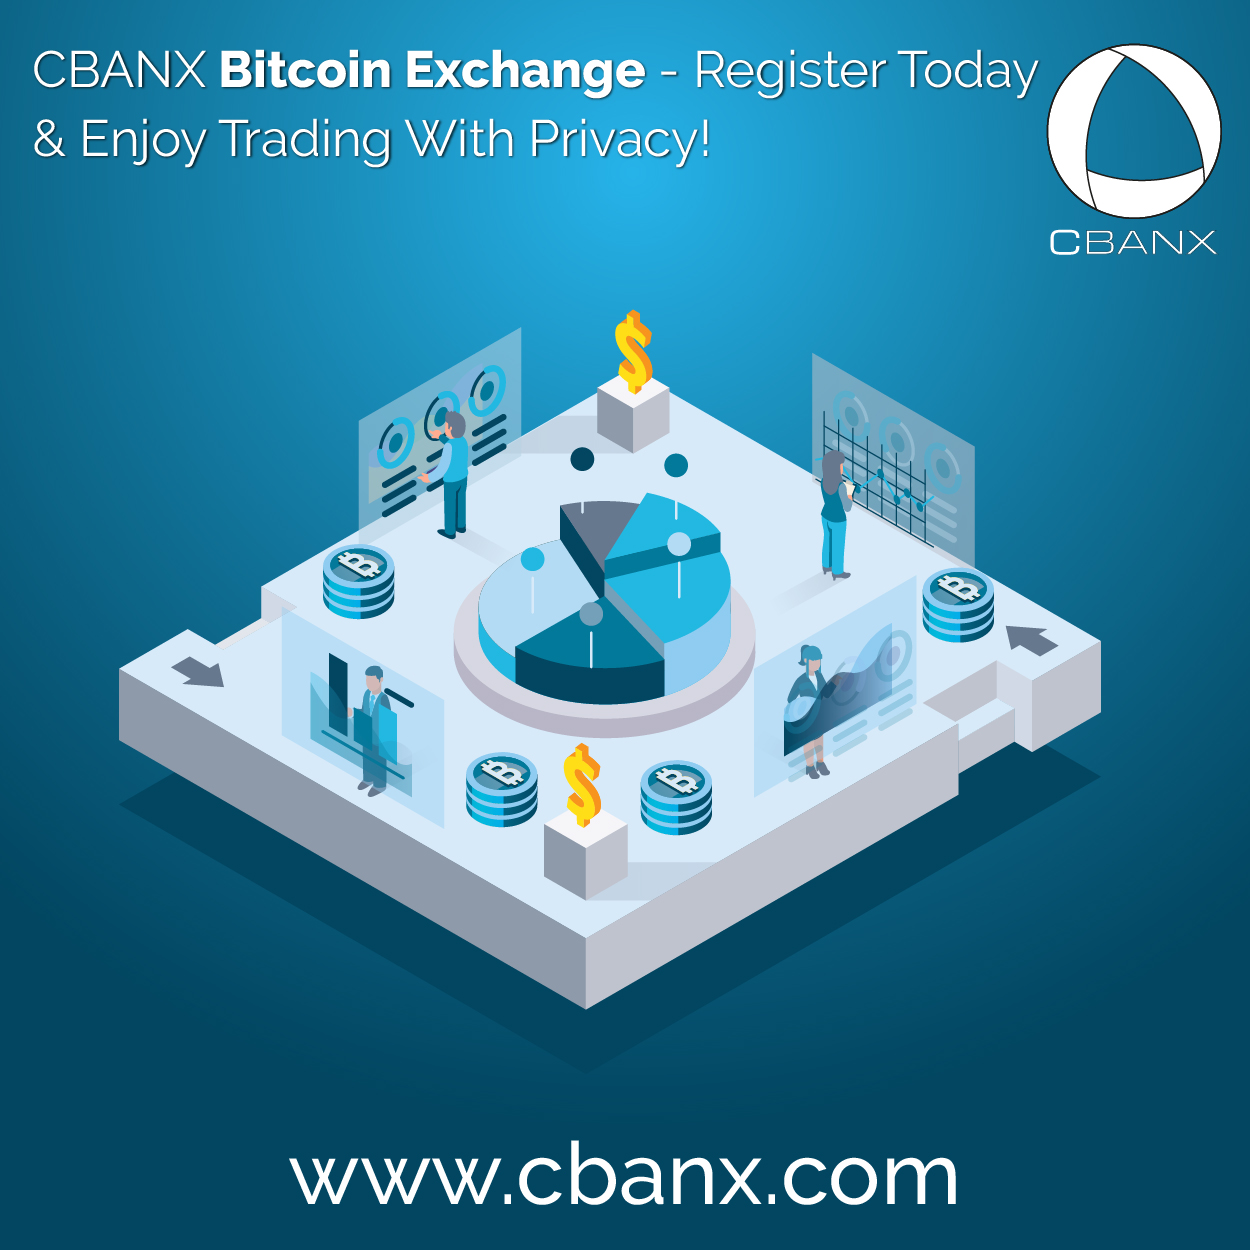 CBANX Bitcoin Exchange – Register Today & Enjoy Trading With Privacy!